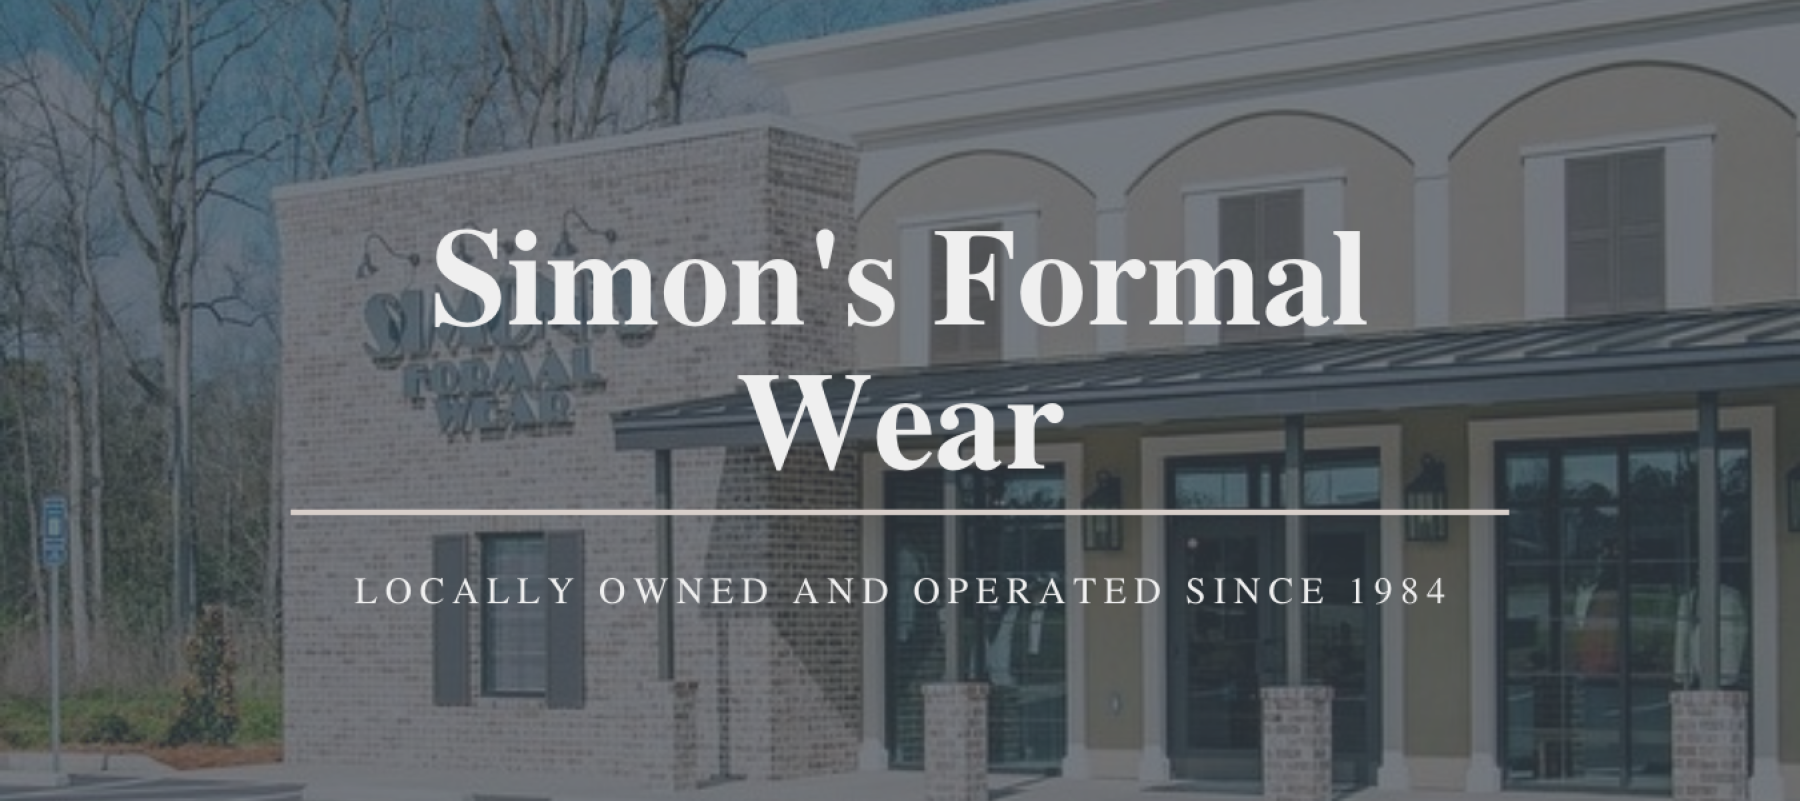 About Us | Simon's Formal Wear Augusta, GA| Suits - Tuxedos - Mens Formal Wear